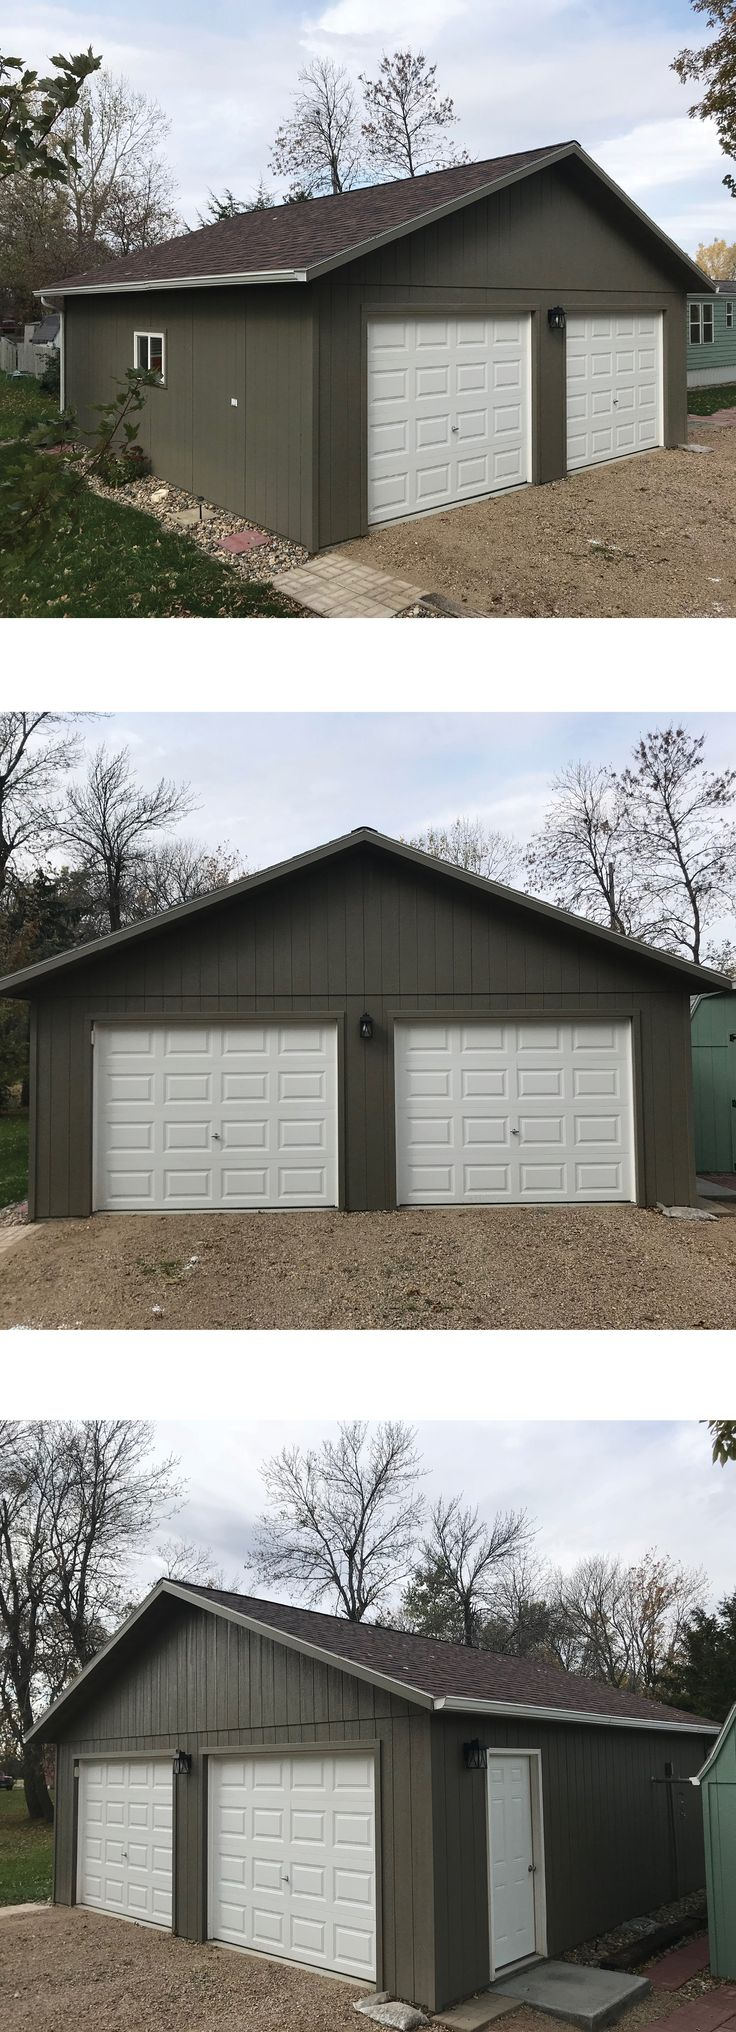 Classica northampton garage door white 9 x 8 no windows - Check Out This 24x24 Garage With Painted Lp Wood Panel Siding And 2 9x7